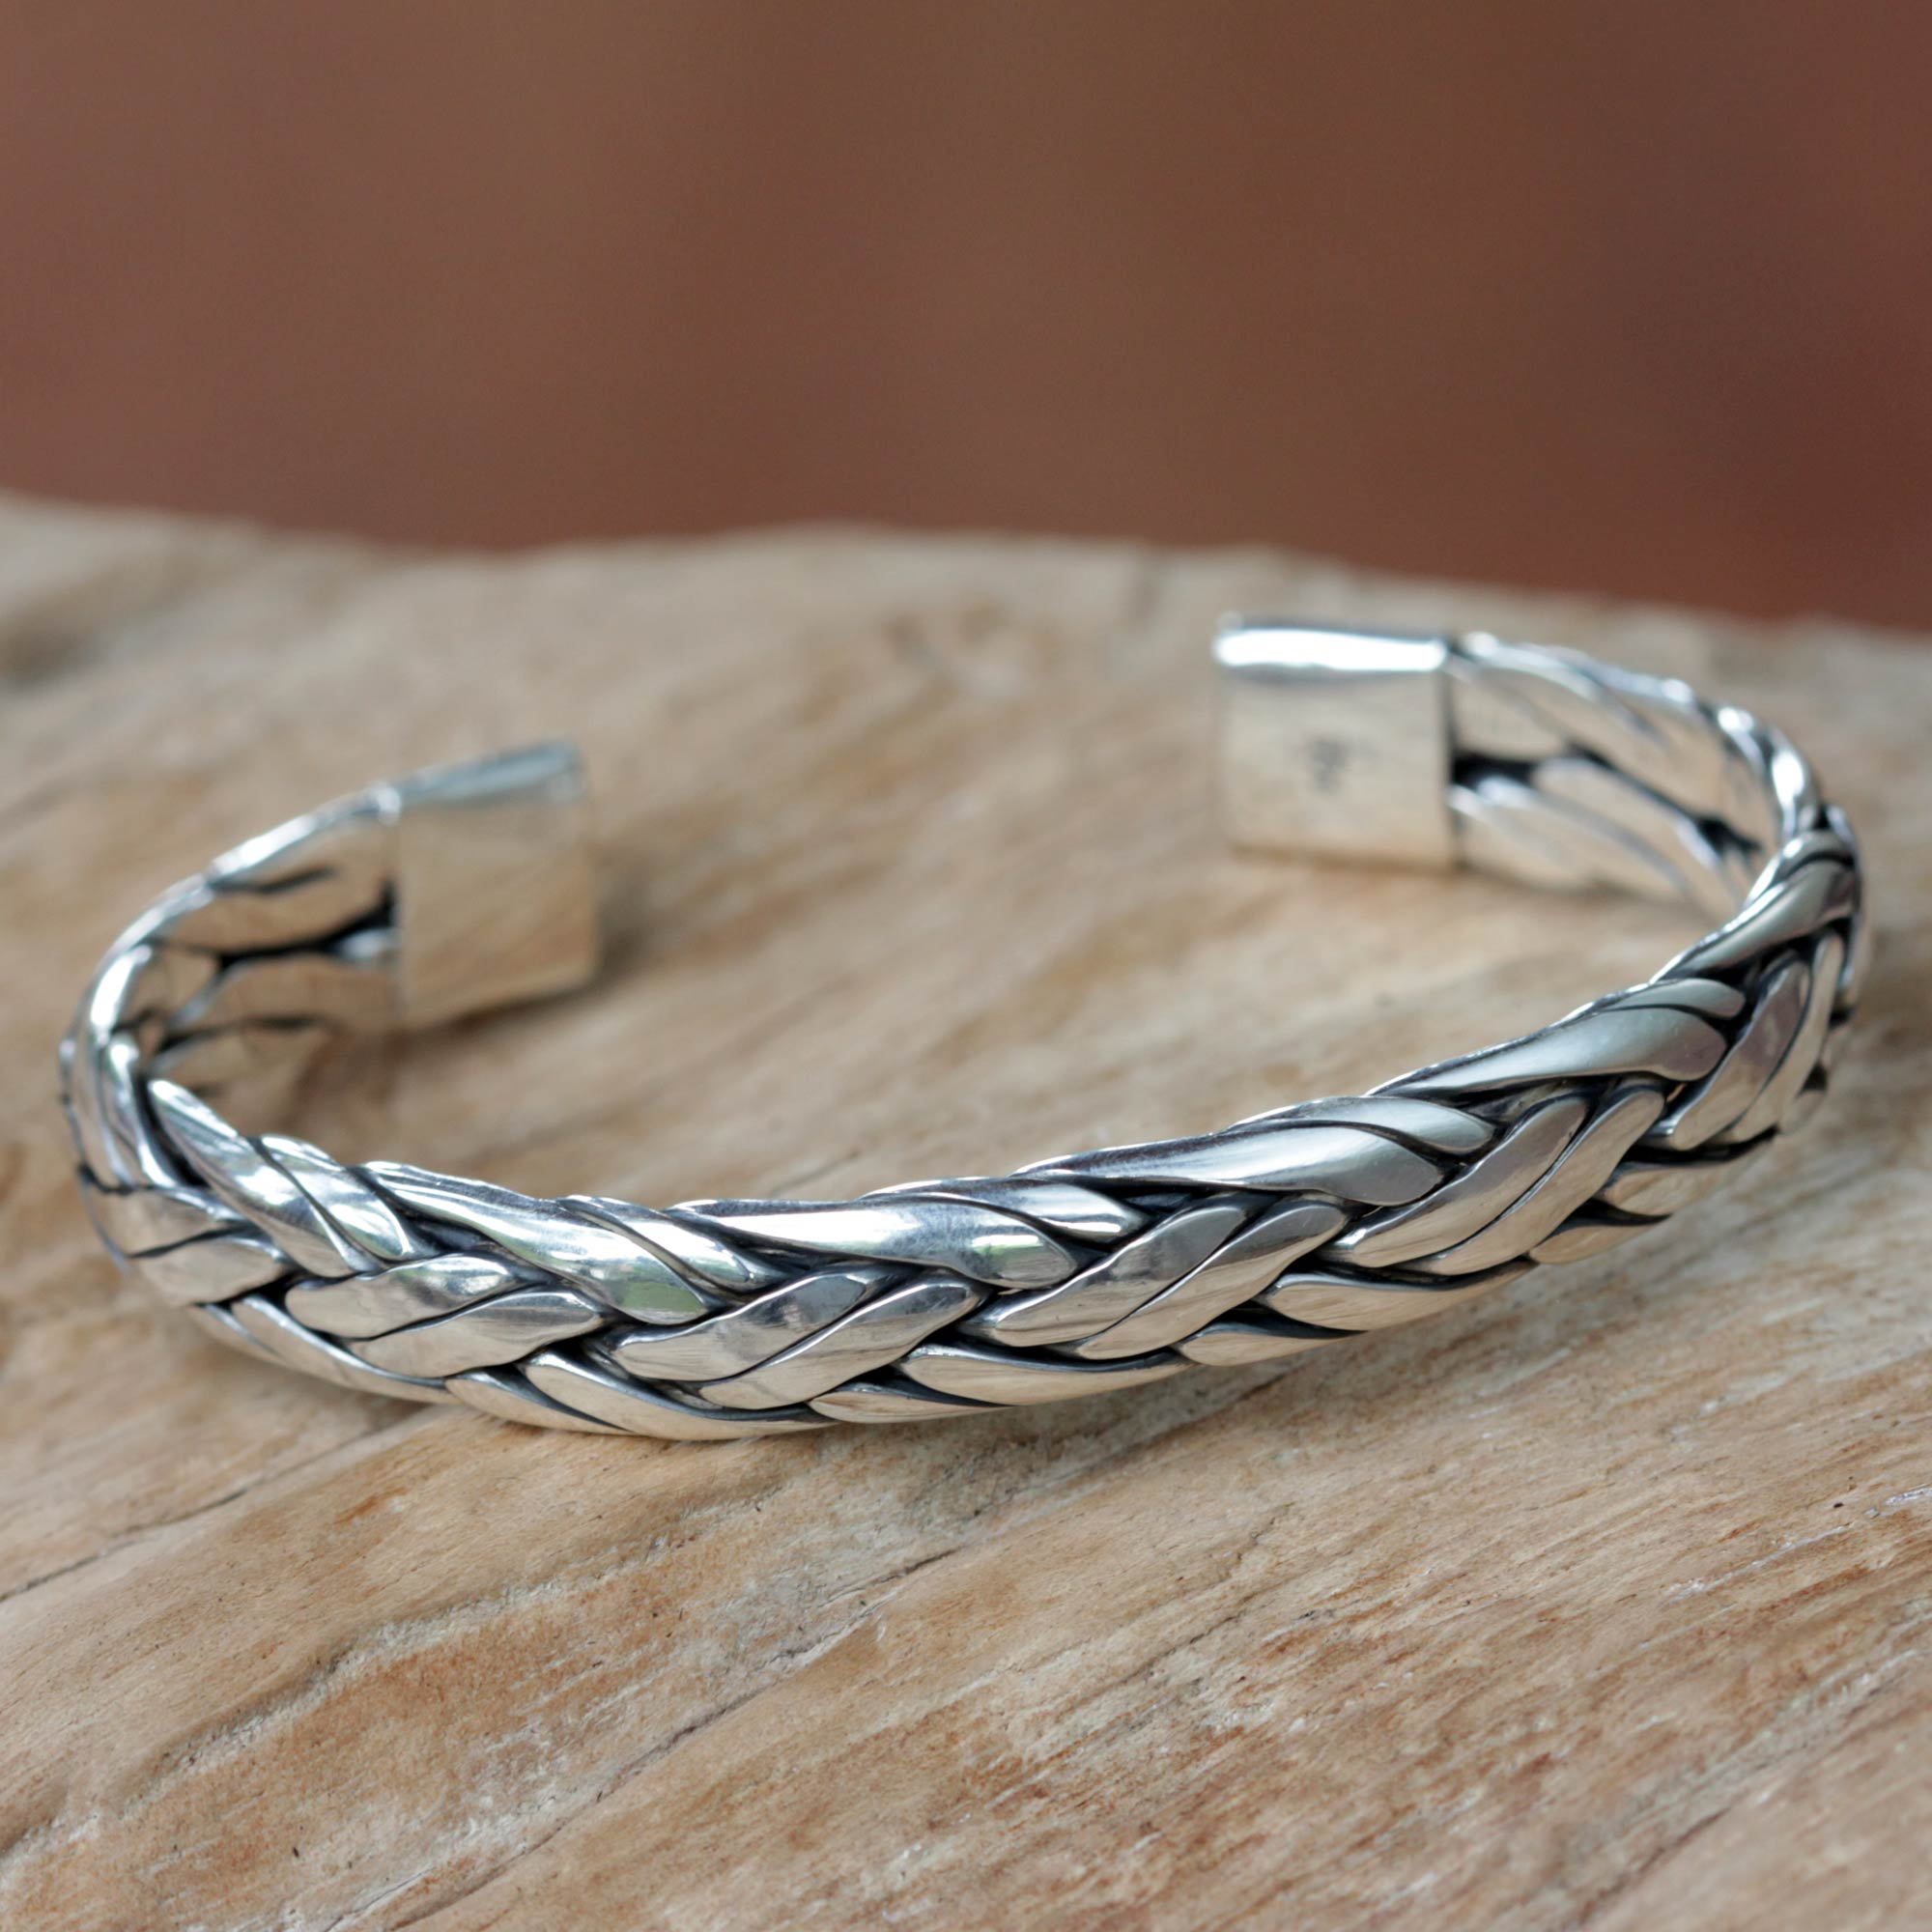 cuff braided jewelry at bangles sterling gold bracelets gallery weave singaraja bangle novica silver and bracelet from